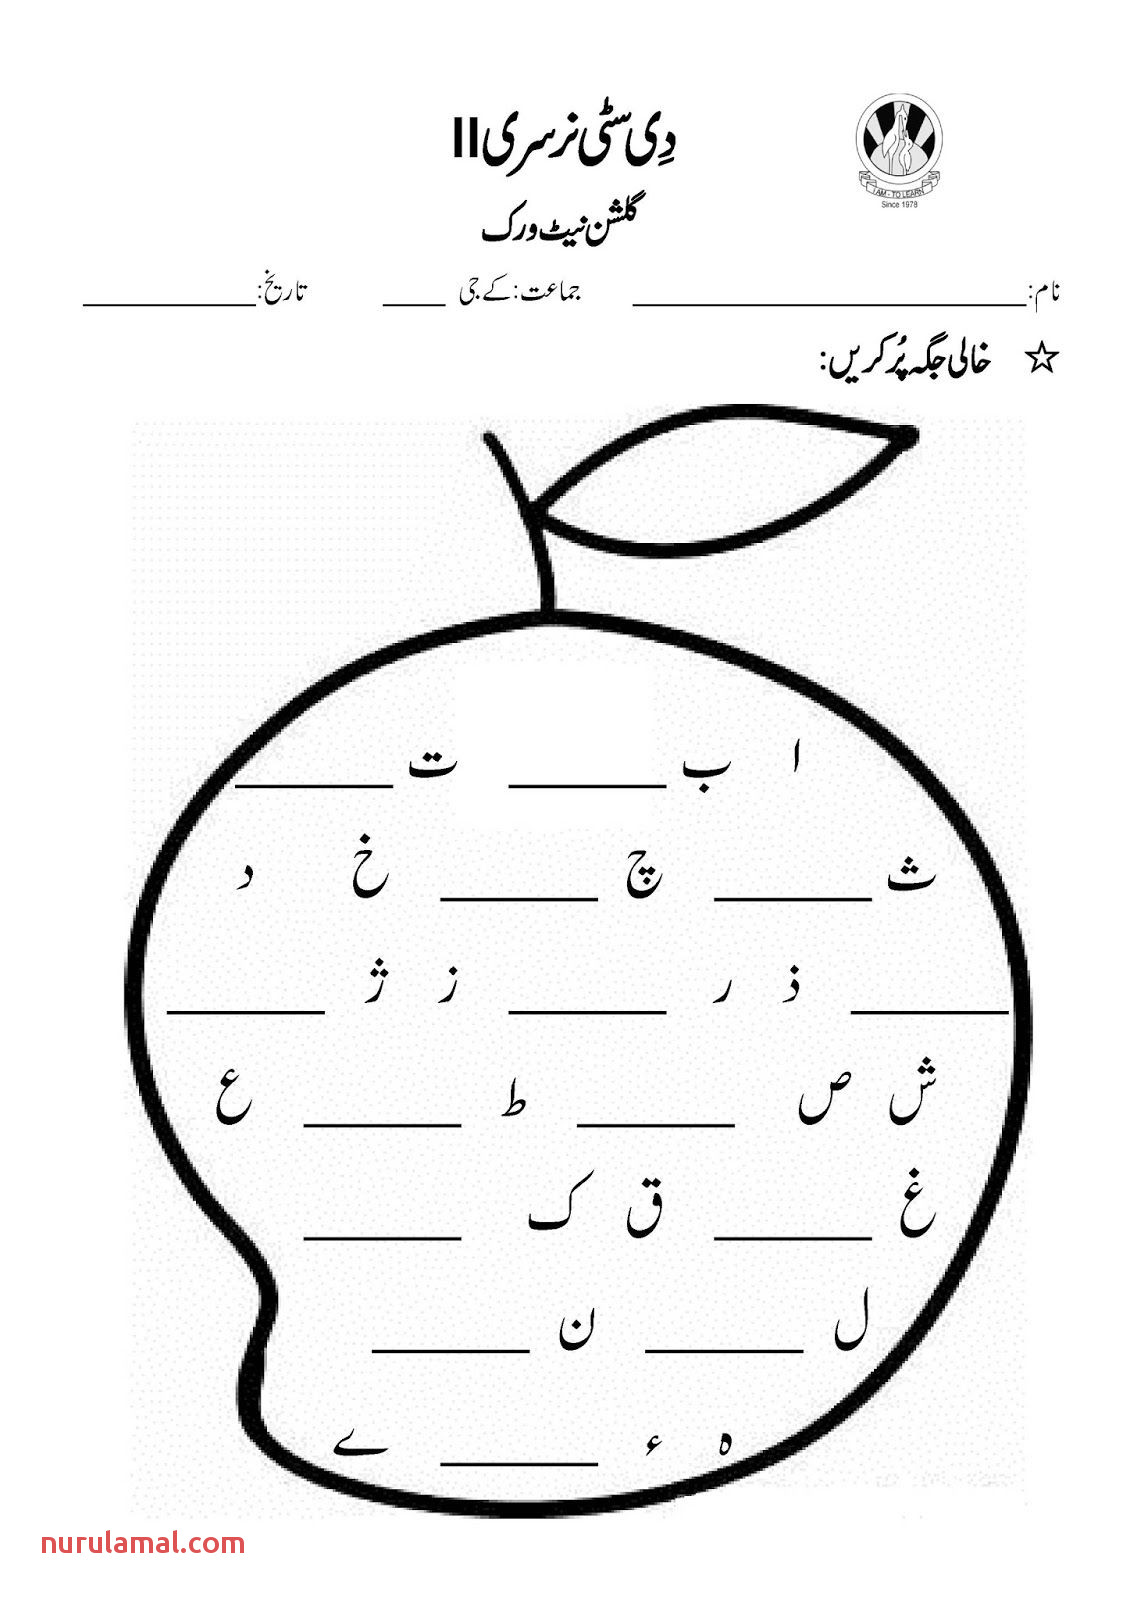 4 Year Old Worksheets Printable A For Apple